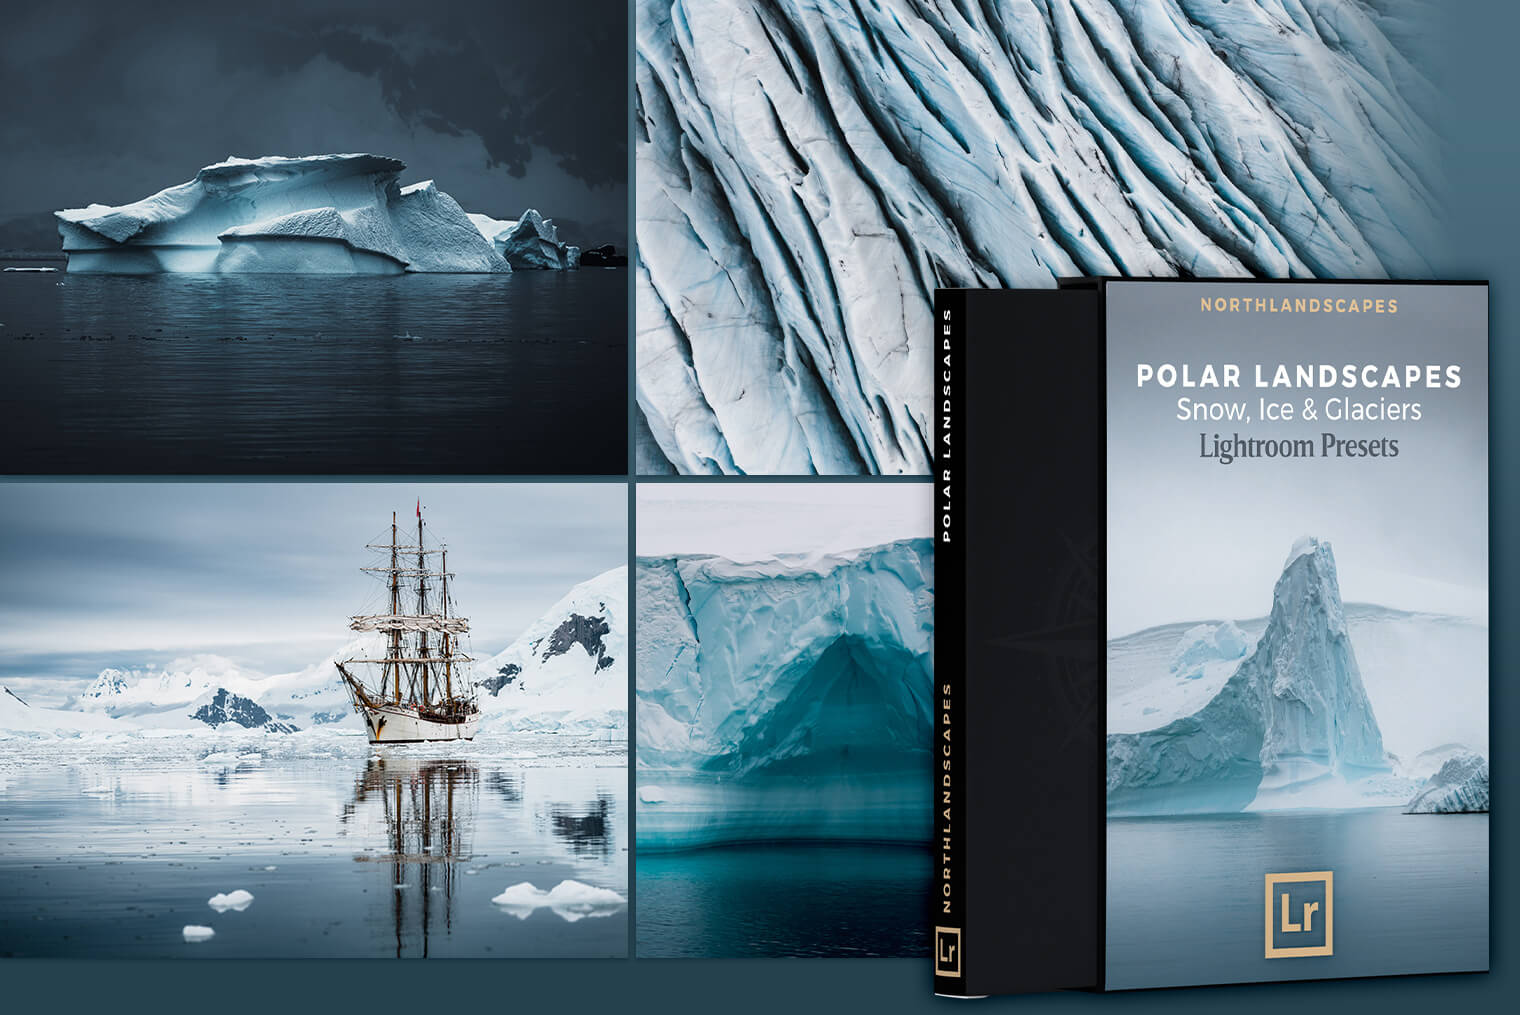 Polar Landscapes Lightroom Presets